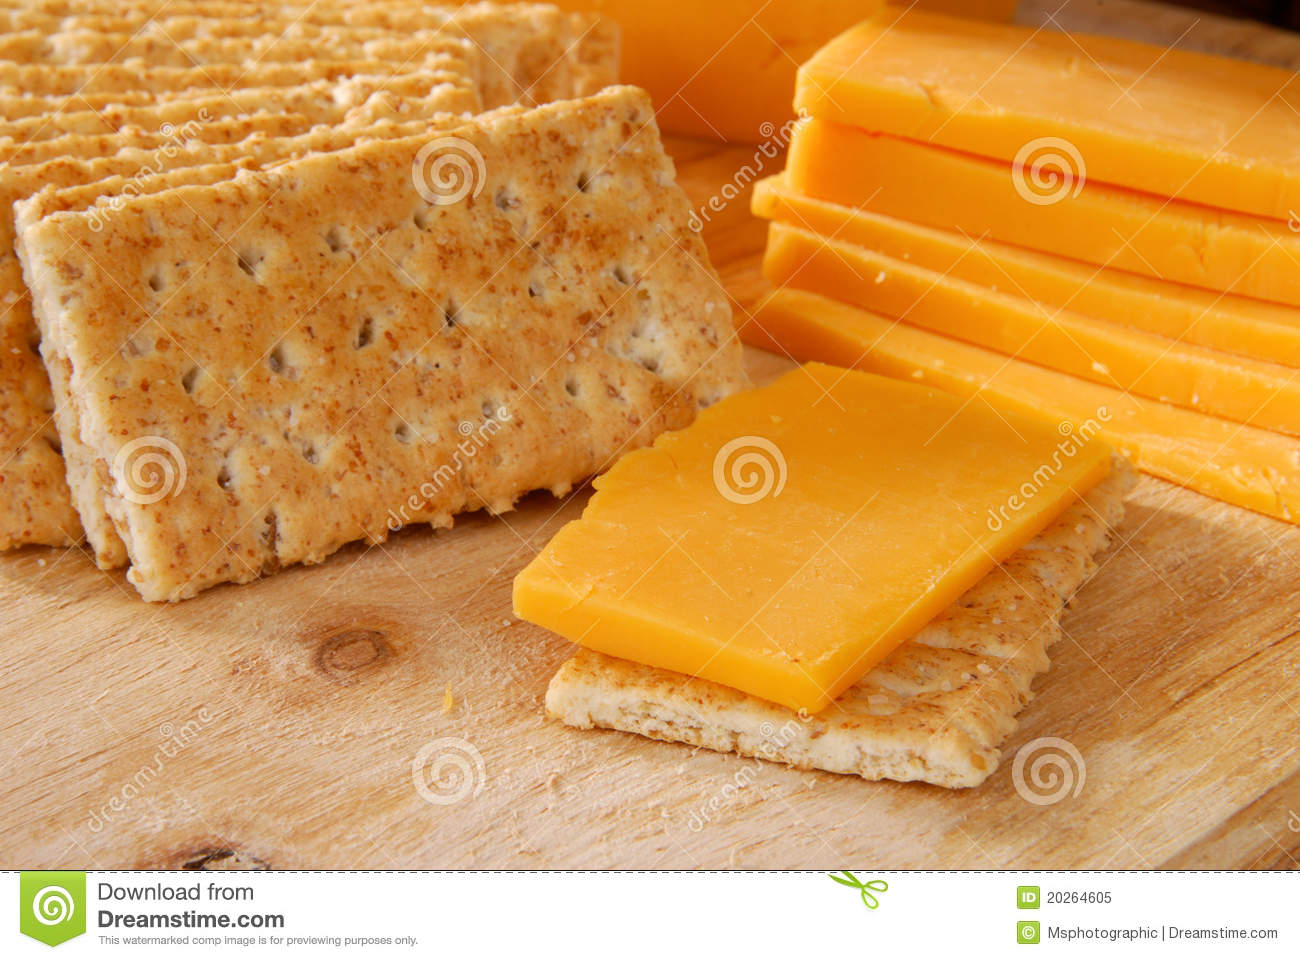 ... cheese and crackers on a cutting board - focus on front cracker